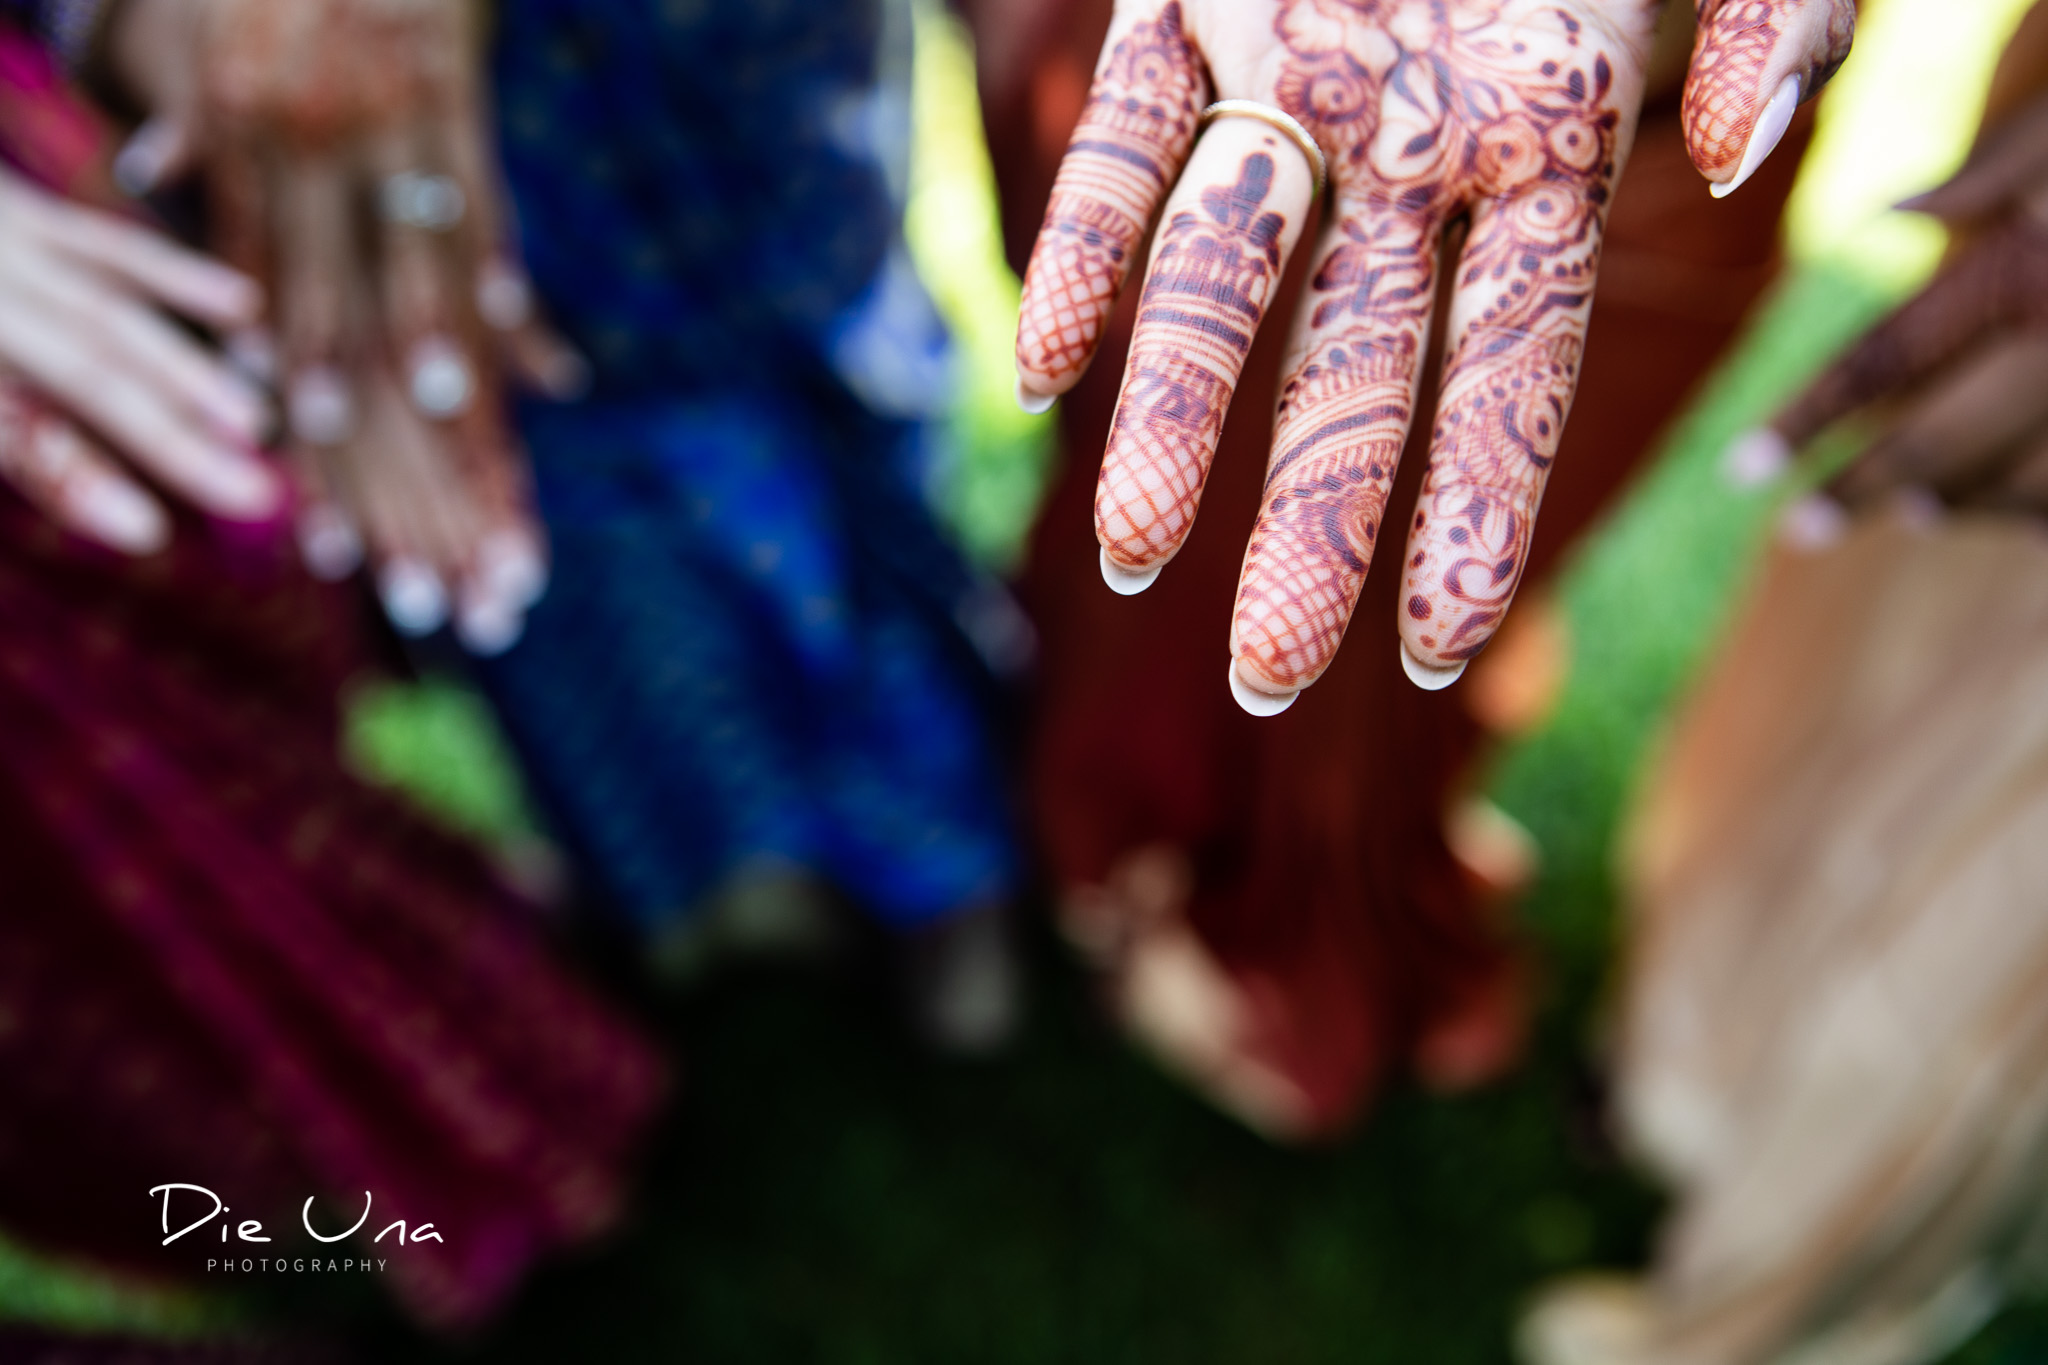 bride henna tattooed for Hindu wedding with groom's name in henna.jpg